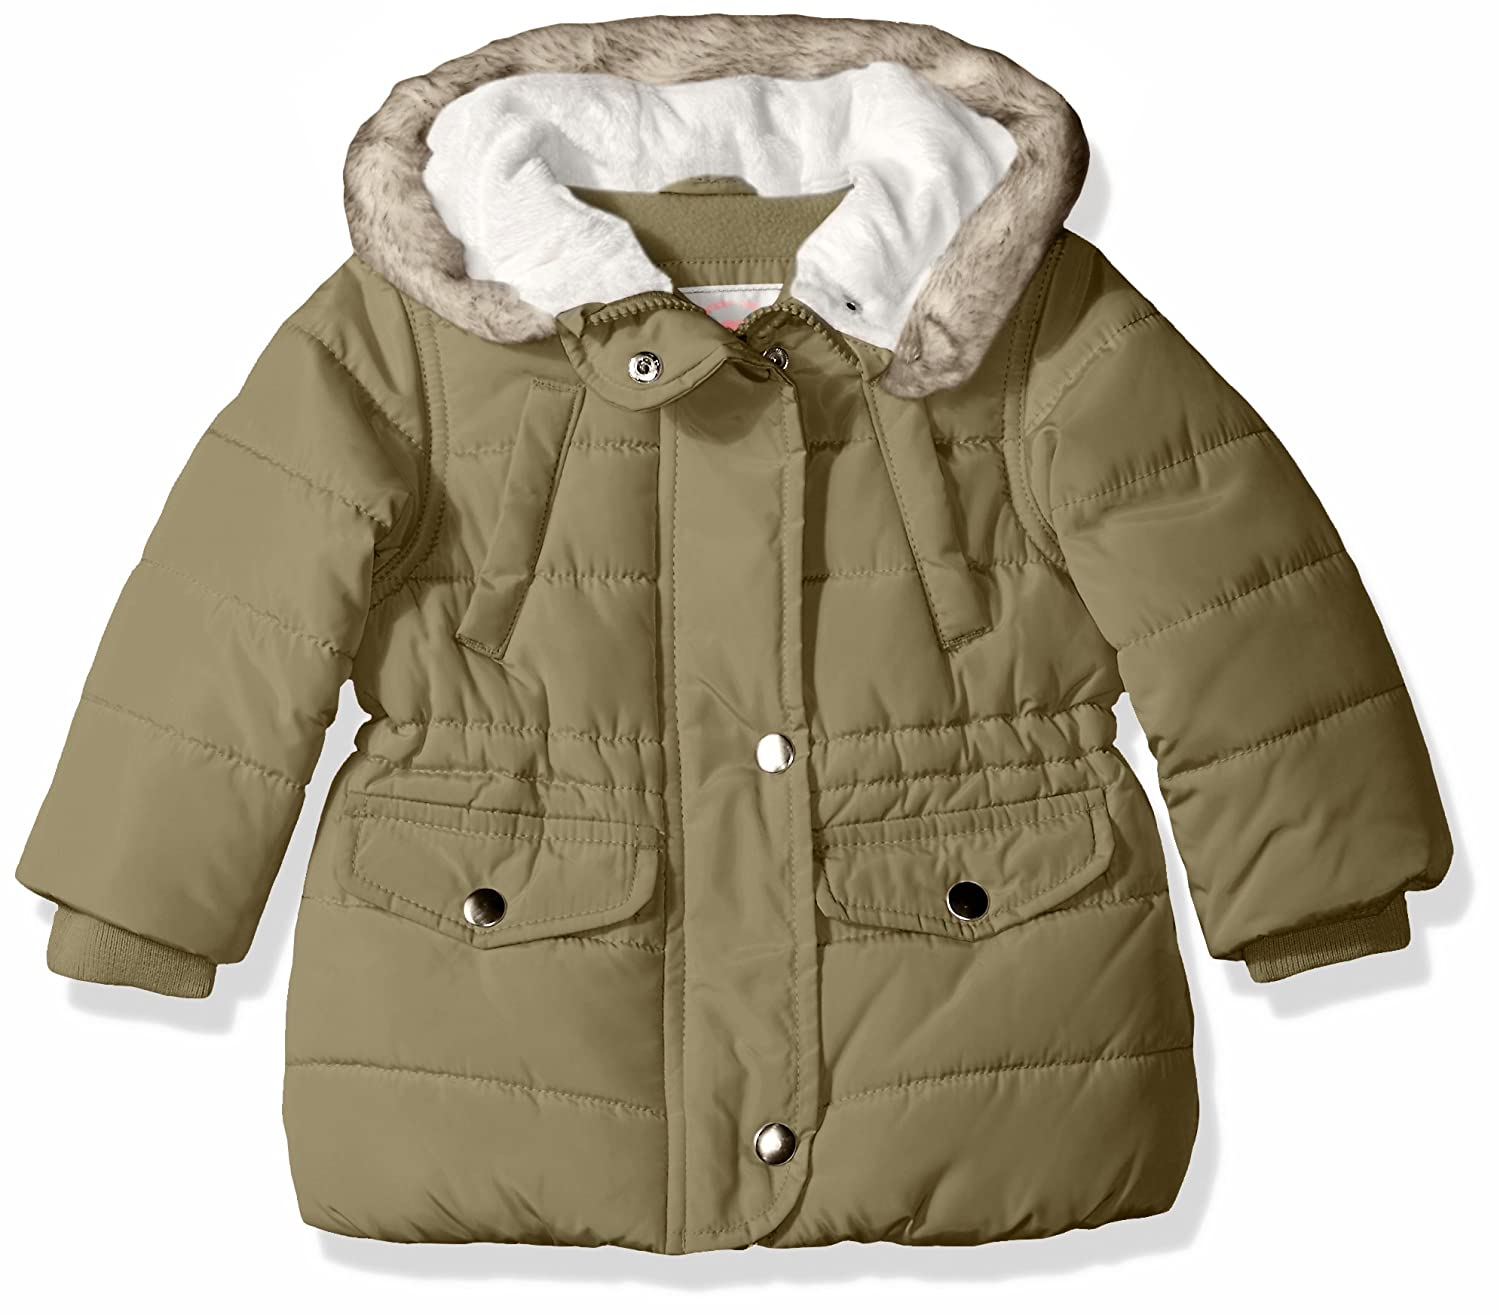 Carter's Baby Girls' Cozy Hood Puffy Jacket Coat Carter's